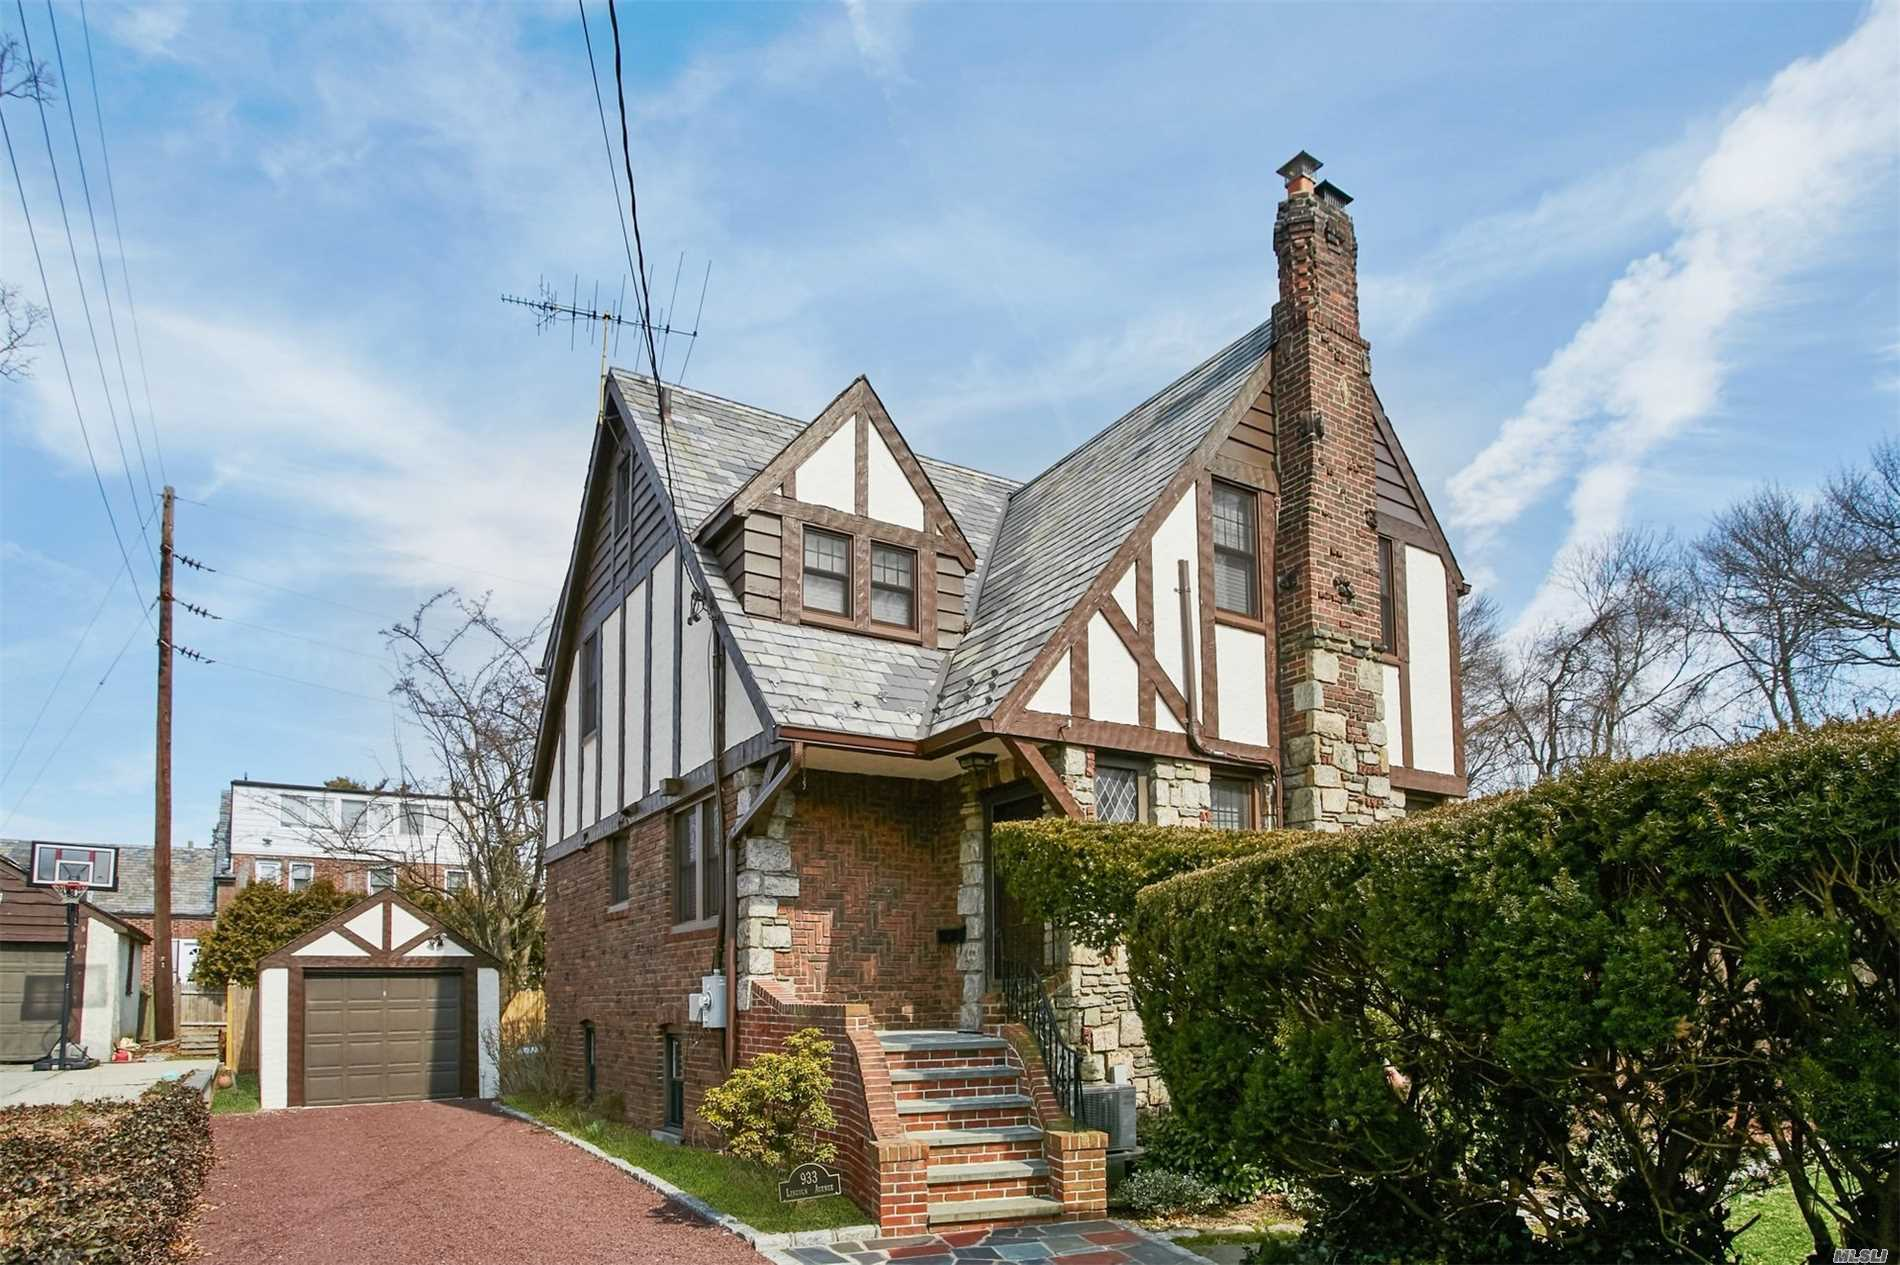 Location, Location, Location.. This Traditional Tudor Located At The End Of A No Through Street Block Boasts Large Rooms With Tons Of Natural Sunlight And Hard Wood Floors Throughout. 1st Floor Features A Living Room W/Fireplace, Dining Room, Eat-In Kitchen, Season Room And Full Bath . Second Floor Features Master Suite W/Full Bath, 2 Addt'l Bedrooms. Finished Basement With Bonus Space. The Outside Park Like Grounds Is A Rare Find And Great For Entertaining!!